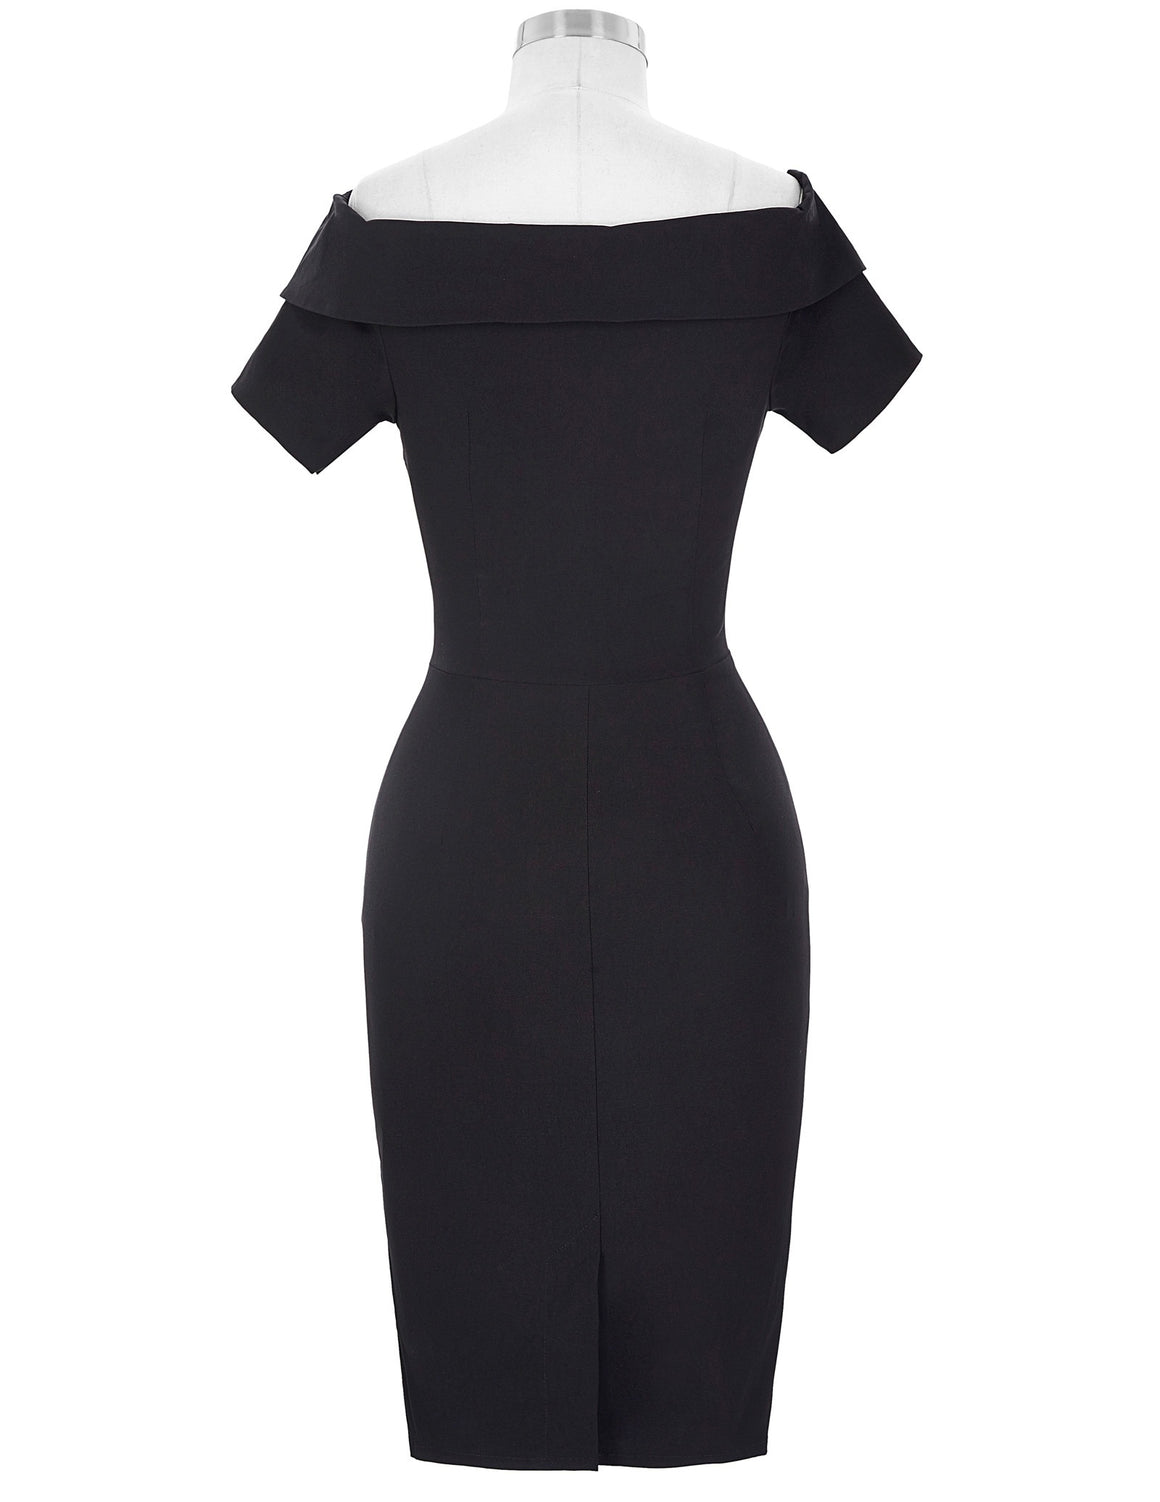 ARRIVING SOON THE HARLOW WIGGLE DRESS BY PONYBOY VINTAGE CLOTHING PRE ORDER NOW!